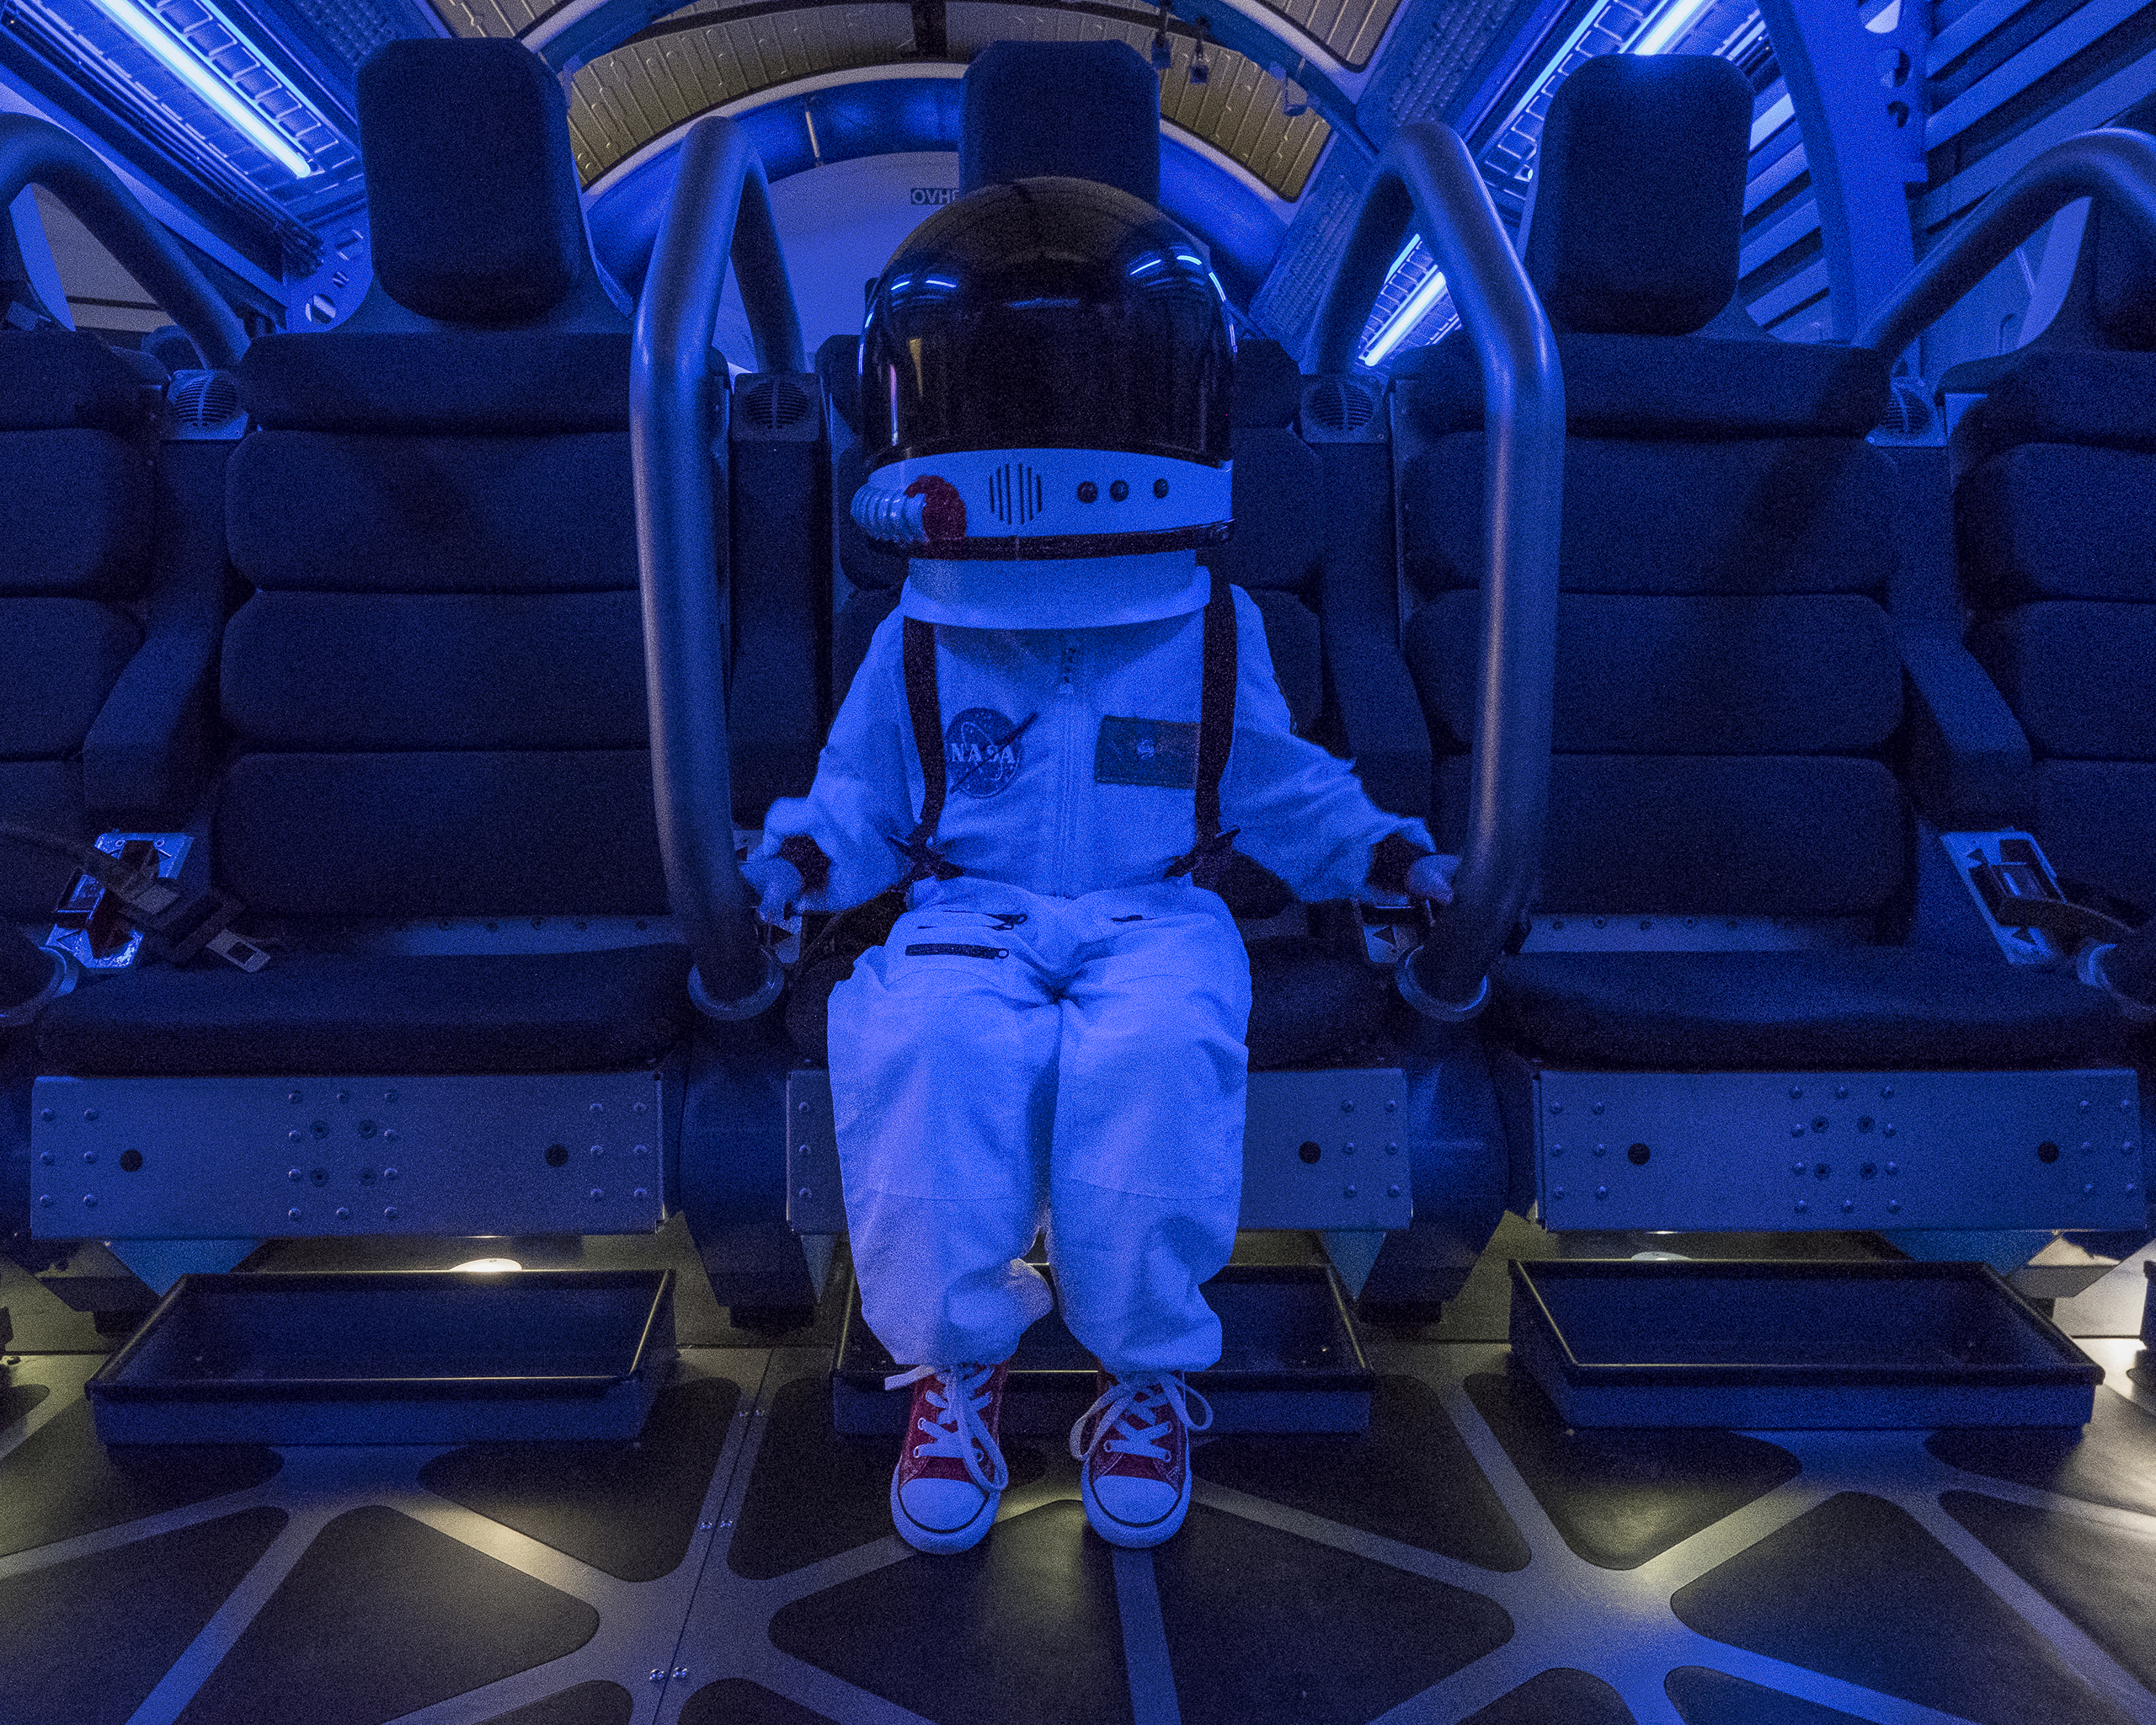 Harrison sits in the Kennedy Space Center's Shuttle Launch experience, July 19, 2016.